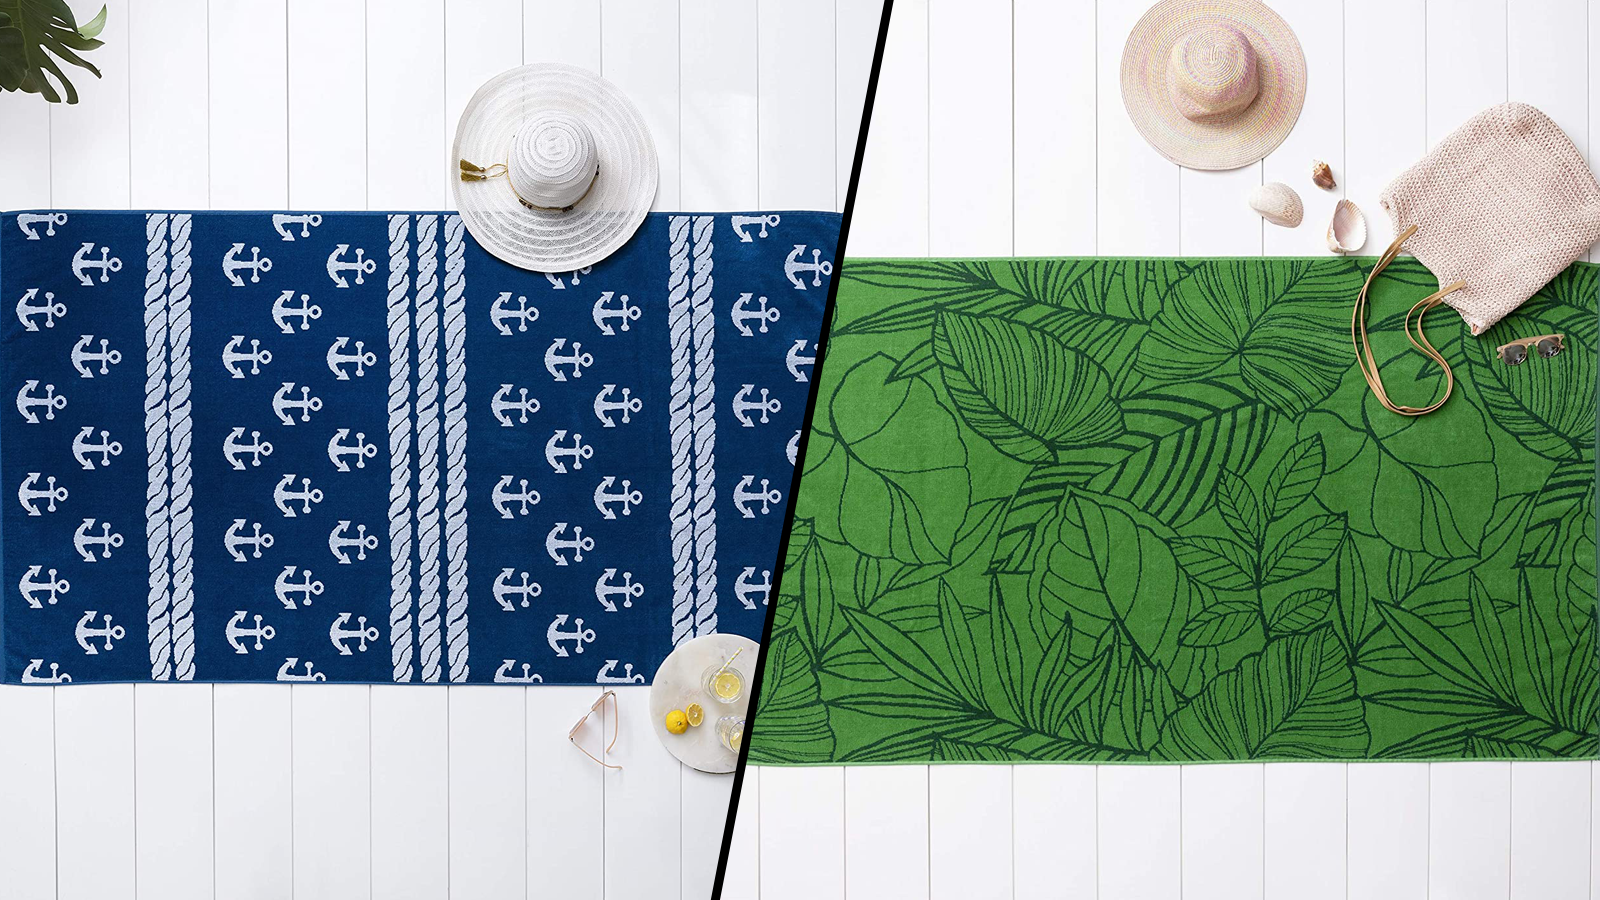 These Stylish Oversized Beach Towels Are Ready to Chill Poolside